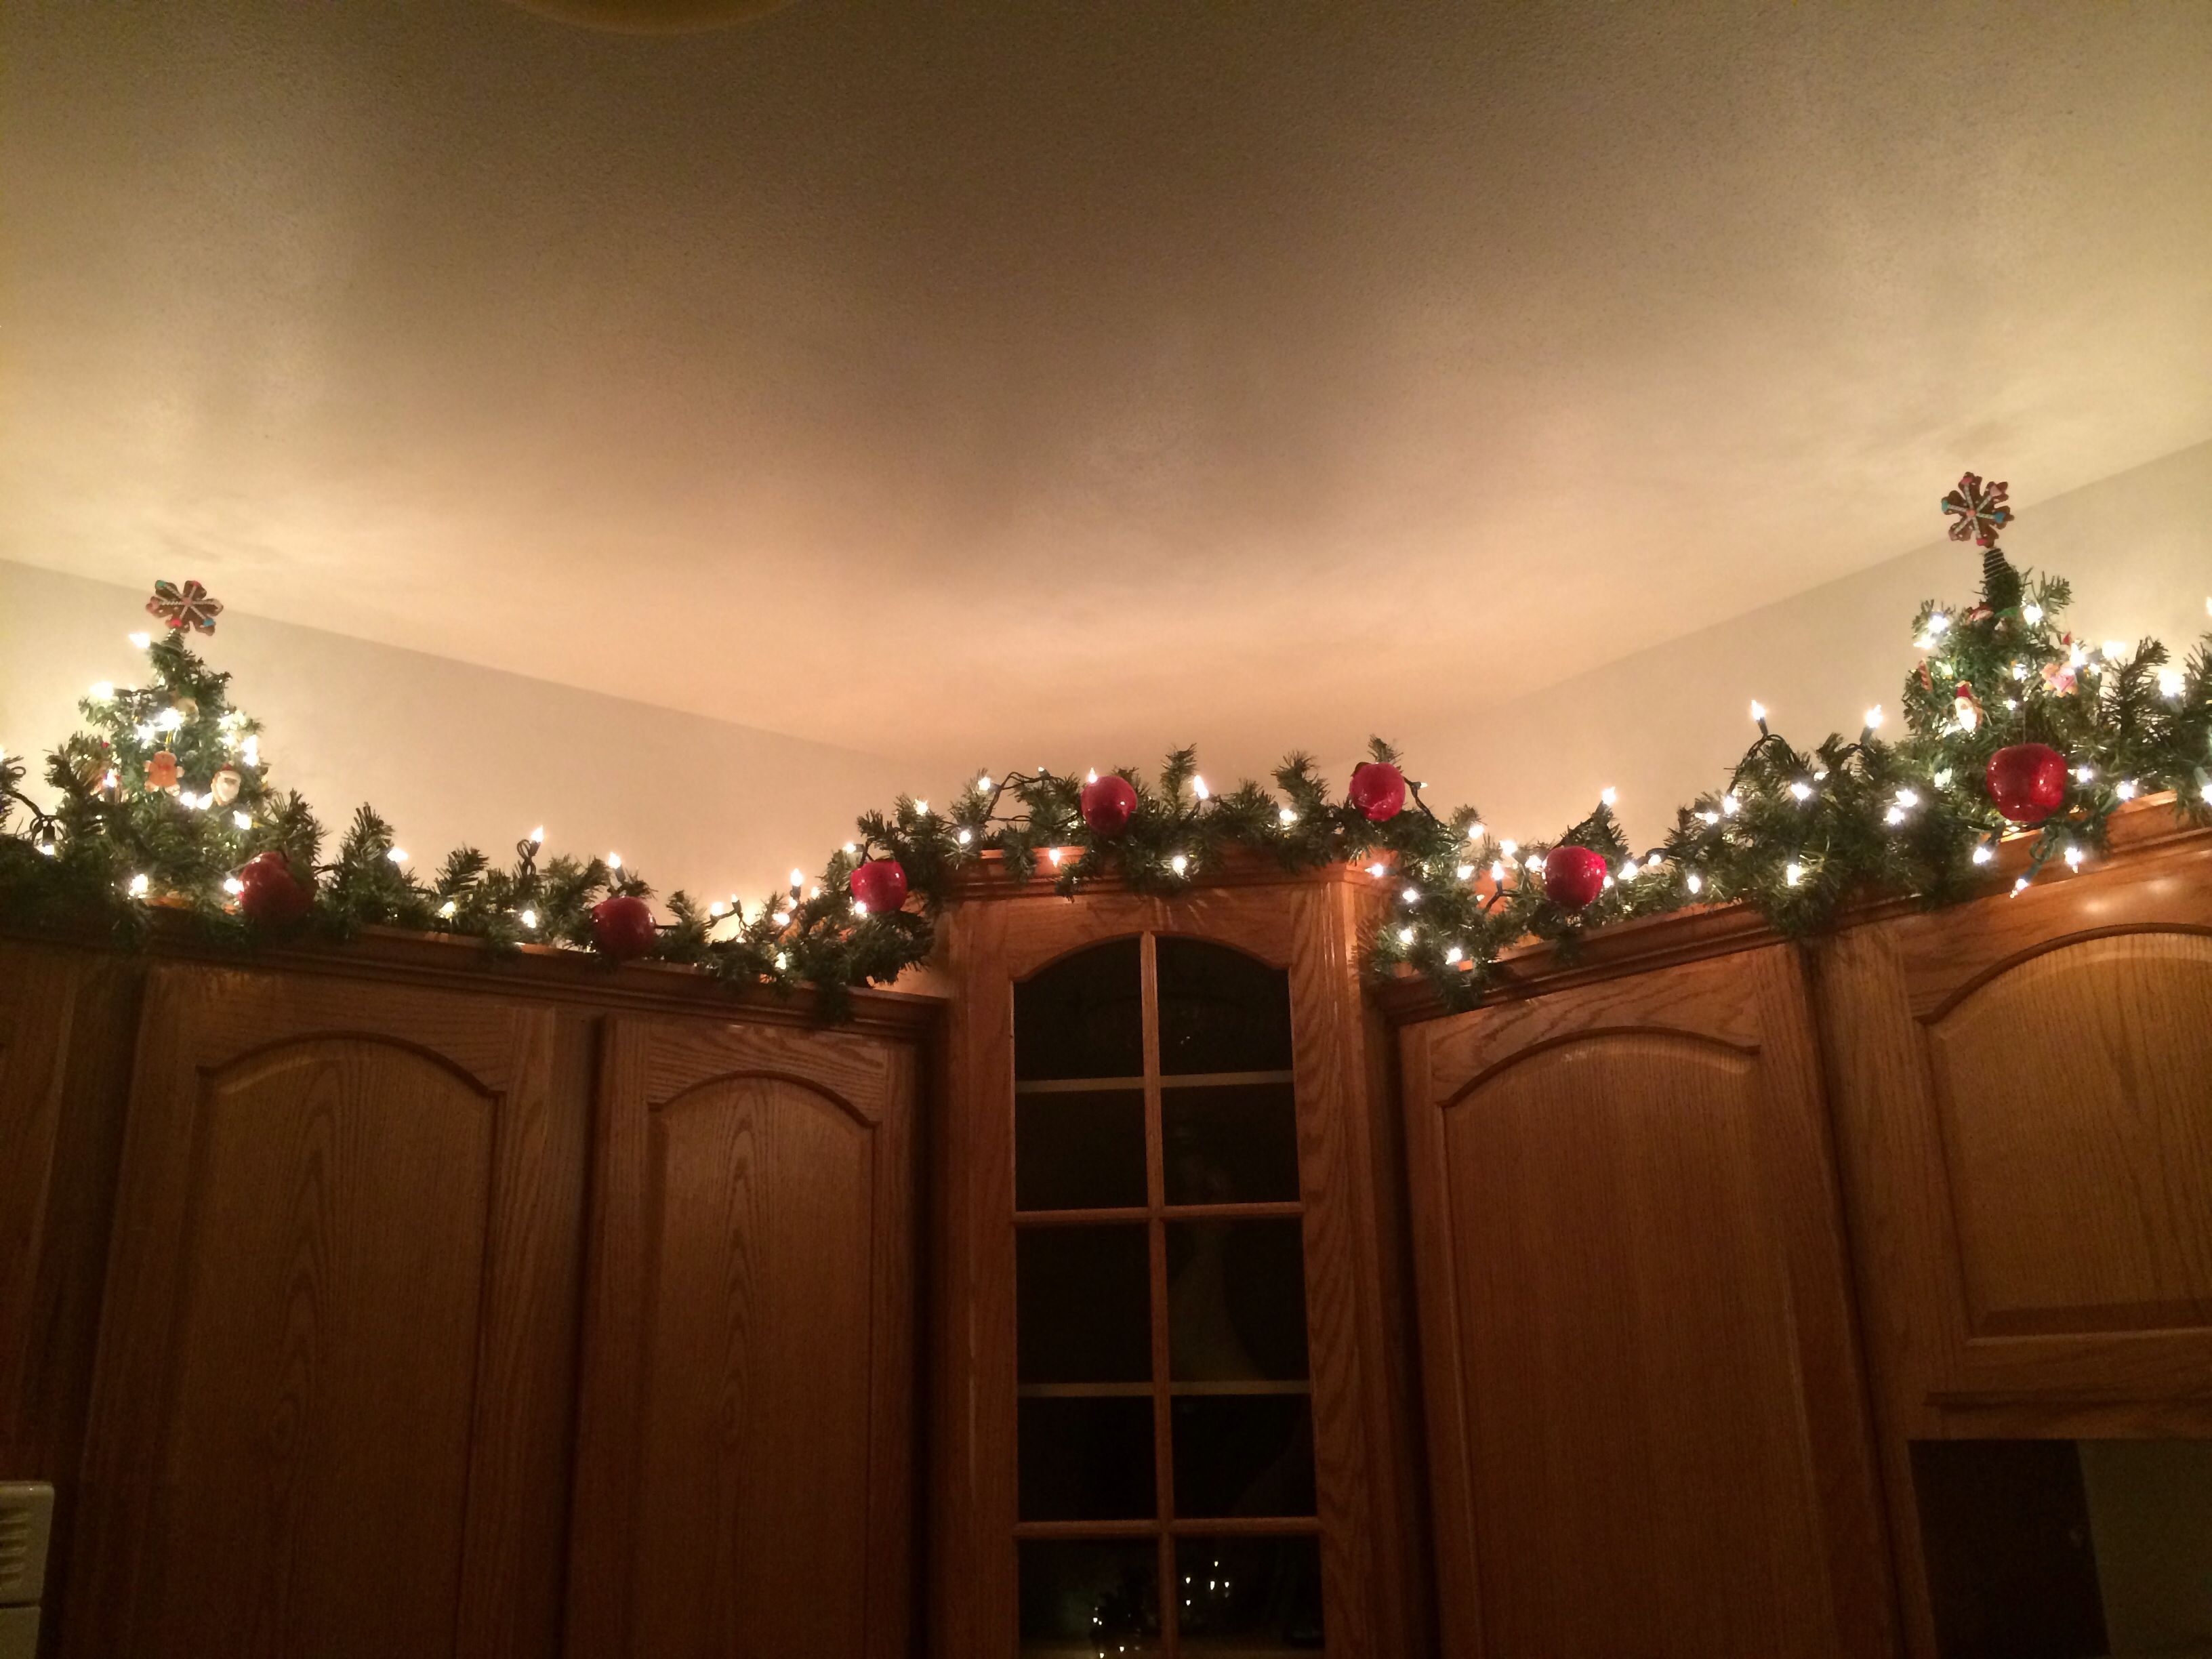 This Is My Actual Kitchen 12 Ft Garland And White Lights With Apple Ornaments And Mini Trees With Gingerb Christmas Garland Christmas Kitchen Xmas Decorations